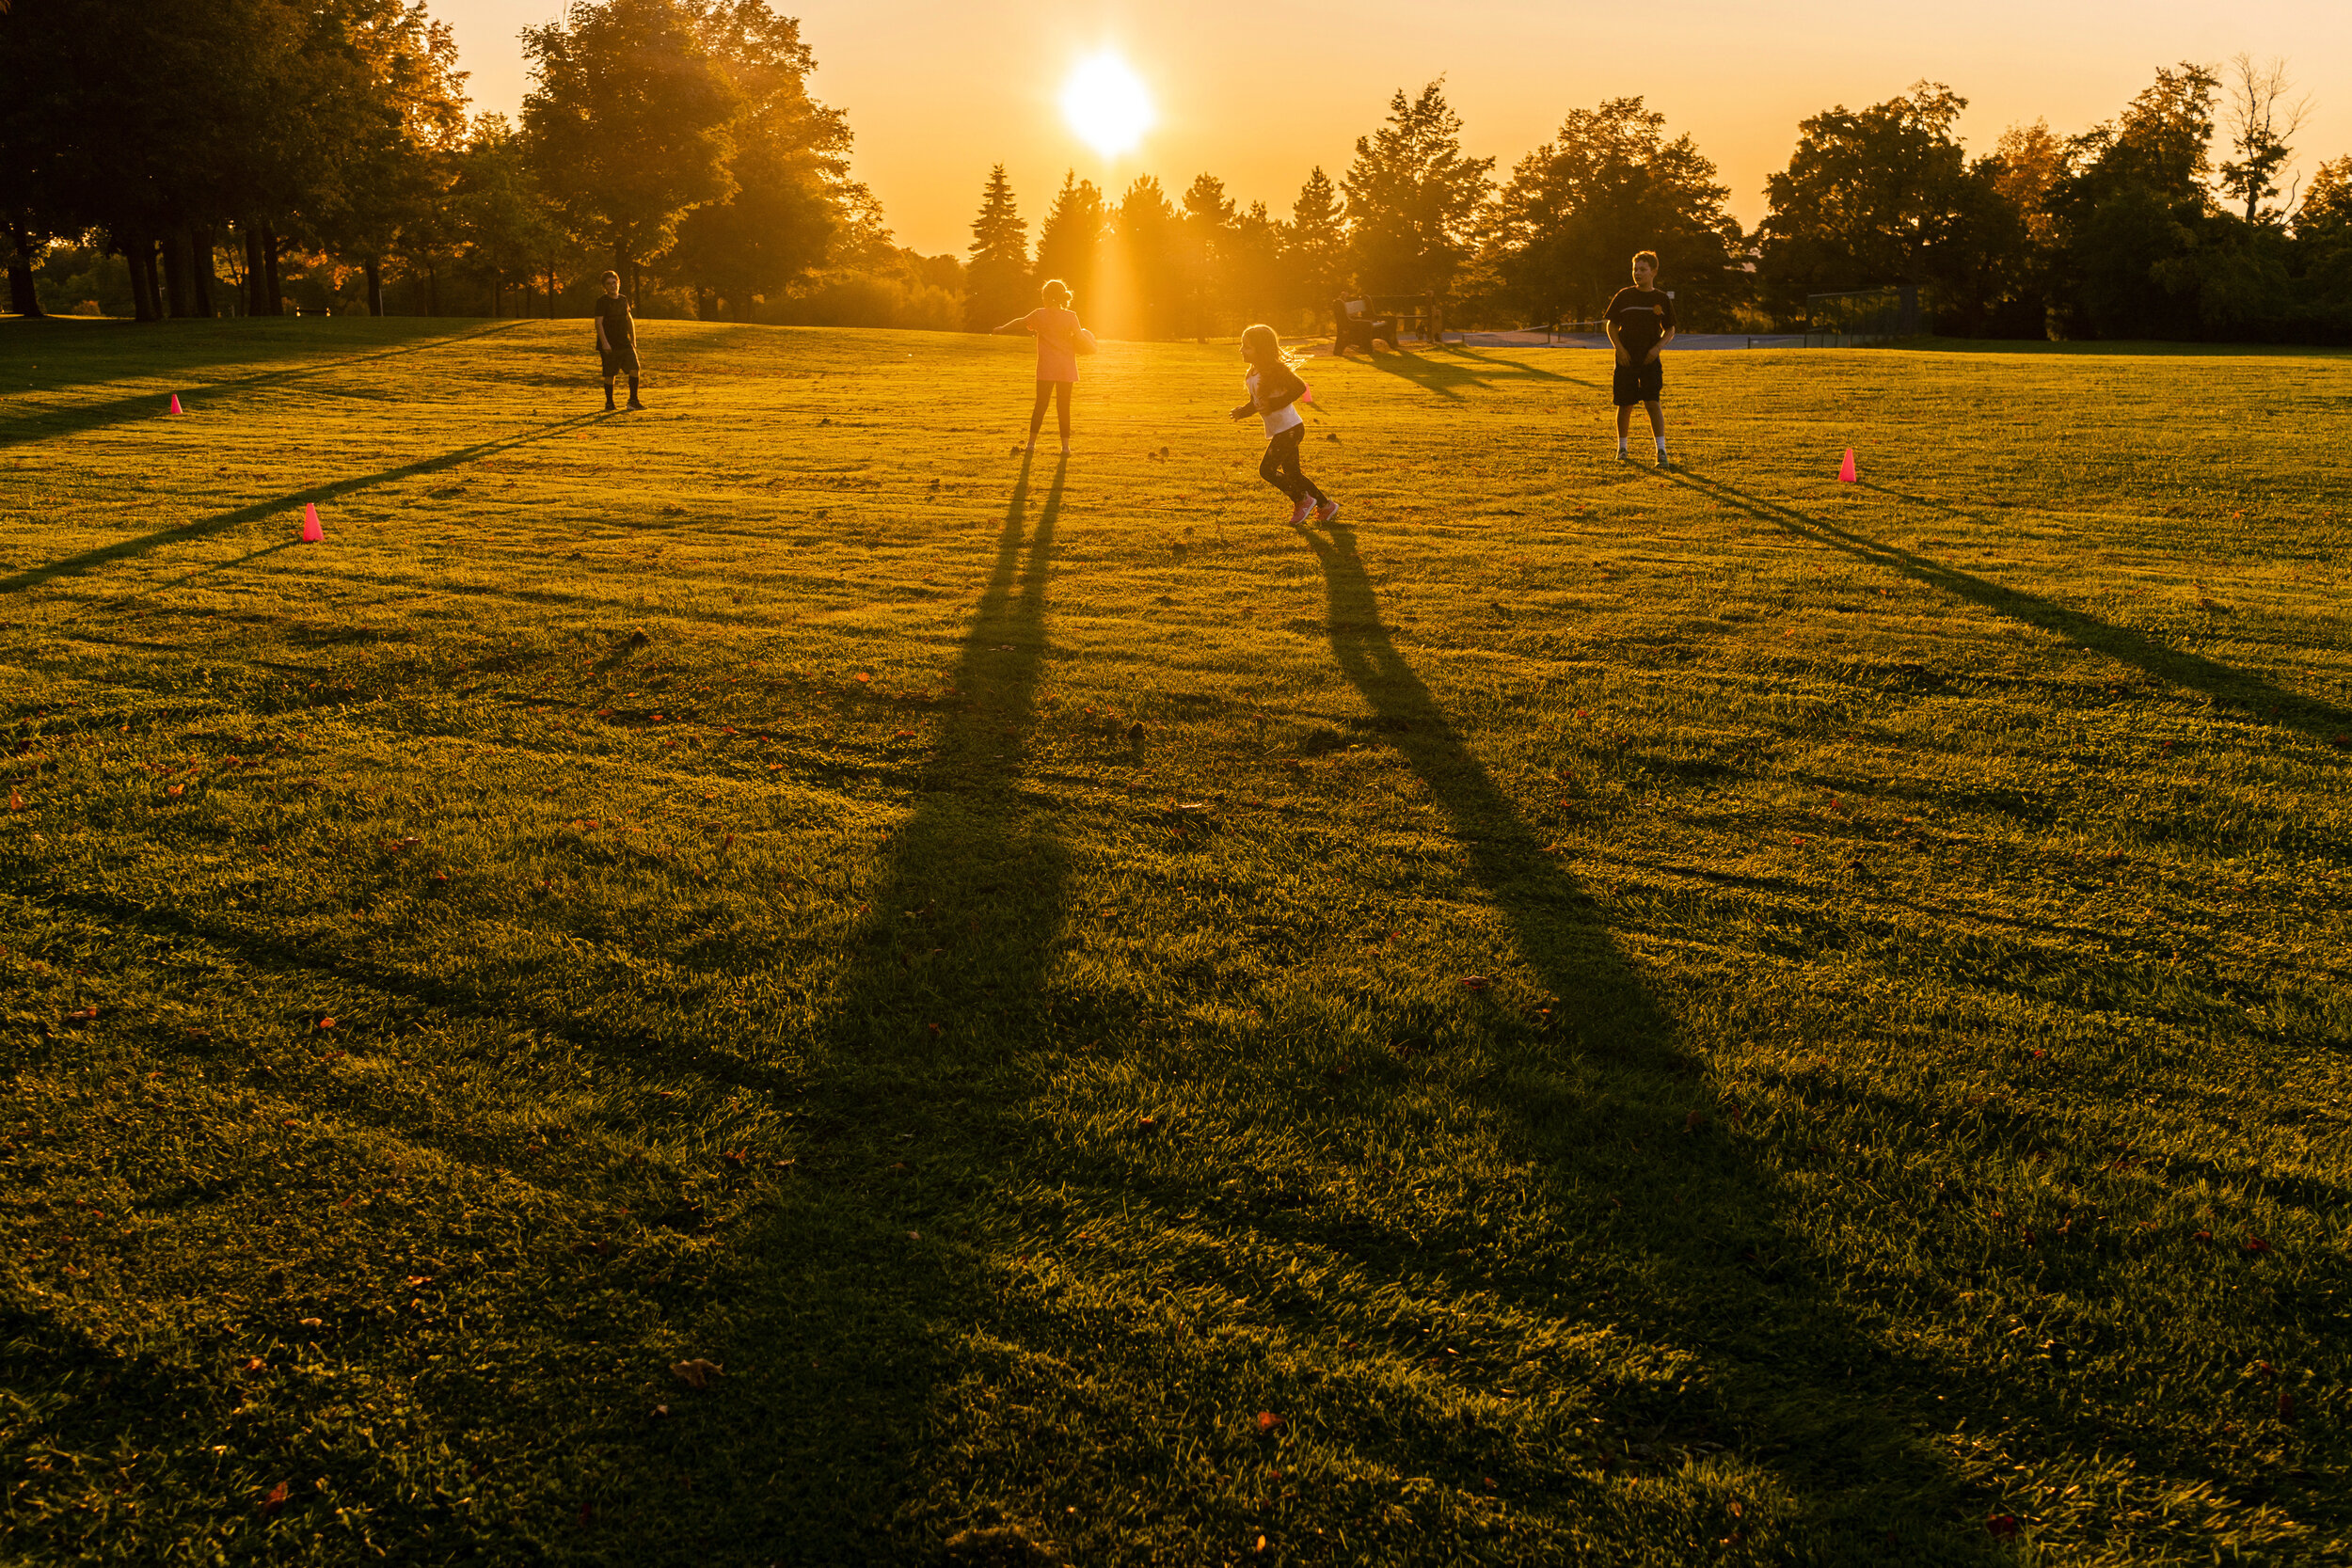 Long shadows stretch across the field as, from left to right, Connor Lamica, 10, Flora Bates, 9, Kate Lamica, 6, and Nicolas Bates, 12, play kickball at Thompson Park.